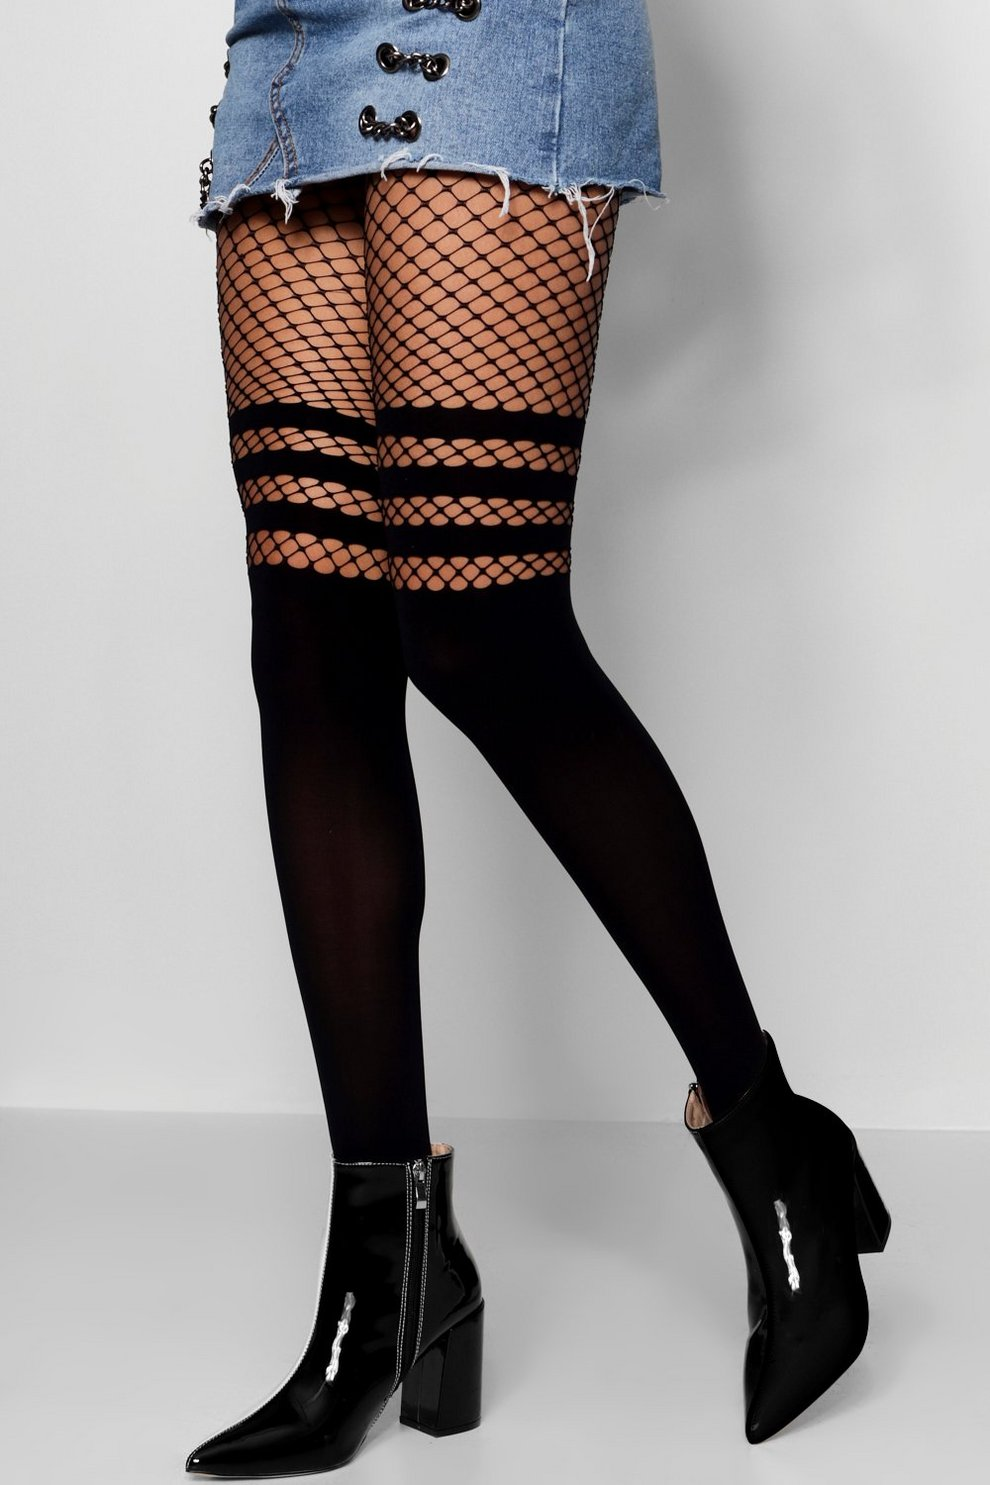 047e228a9d6736 Womens Black Sports Stripe Mock Hold Up Fishnet Tights. Hover to zoom